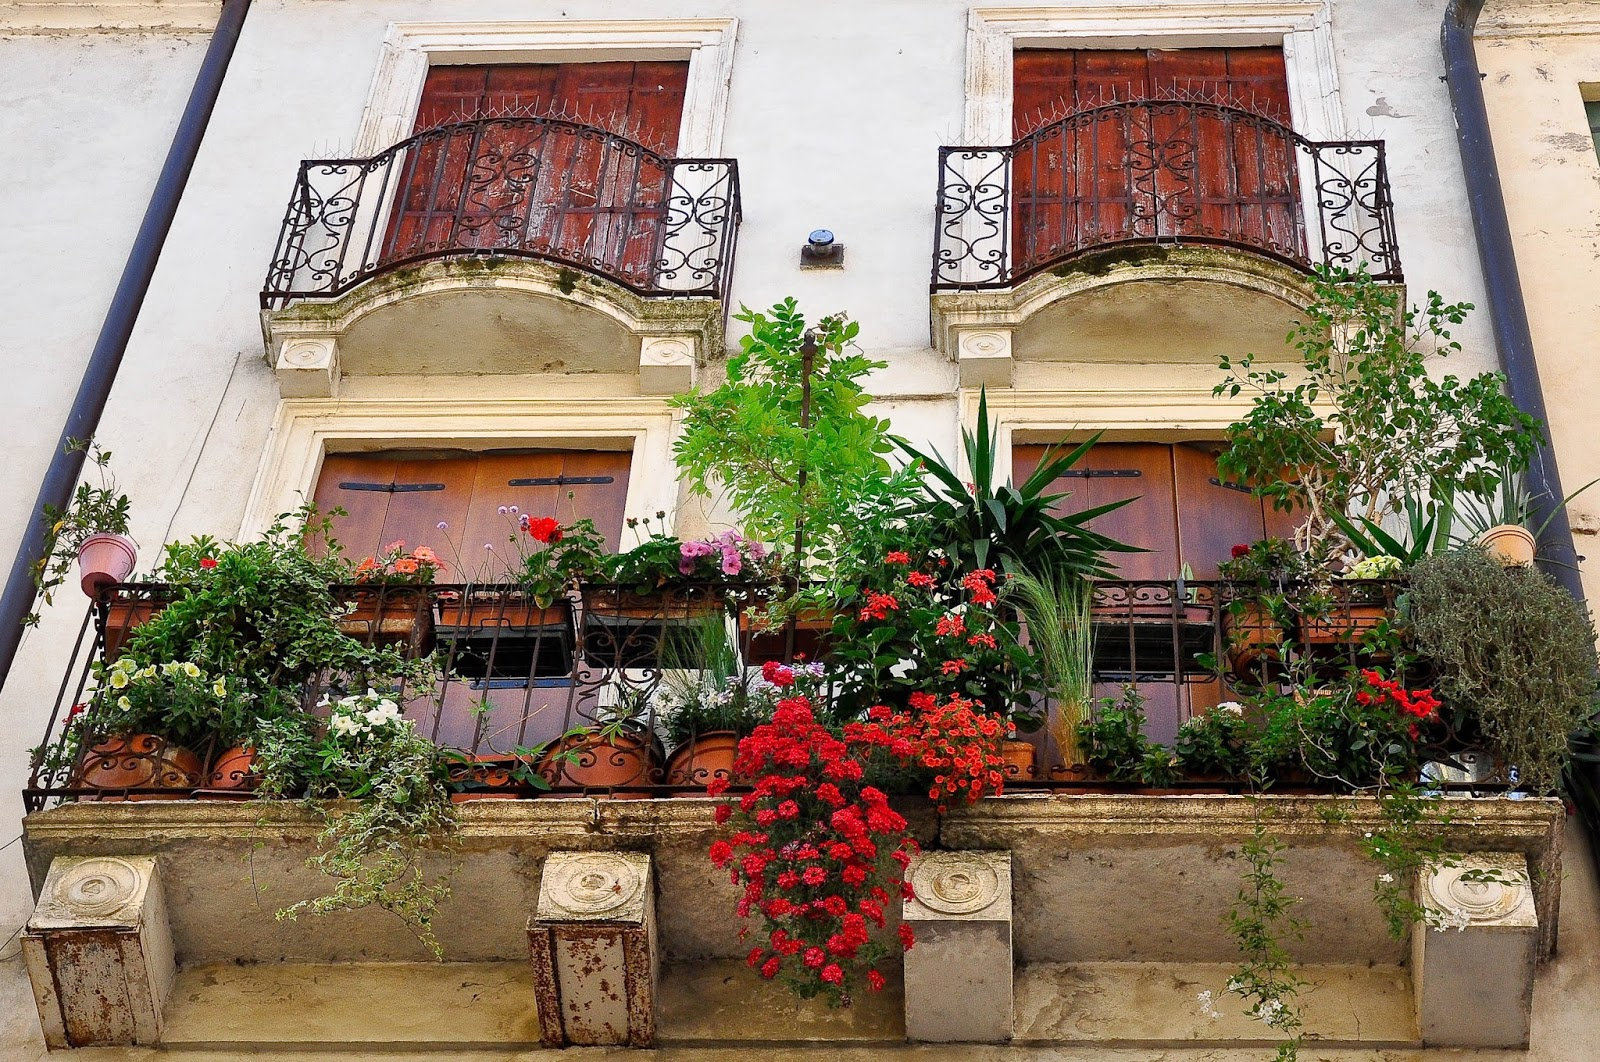 A hanging garden on a balcony with red cascading flowers in Vicenza, Italy